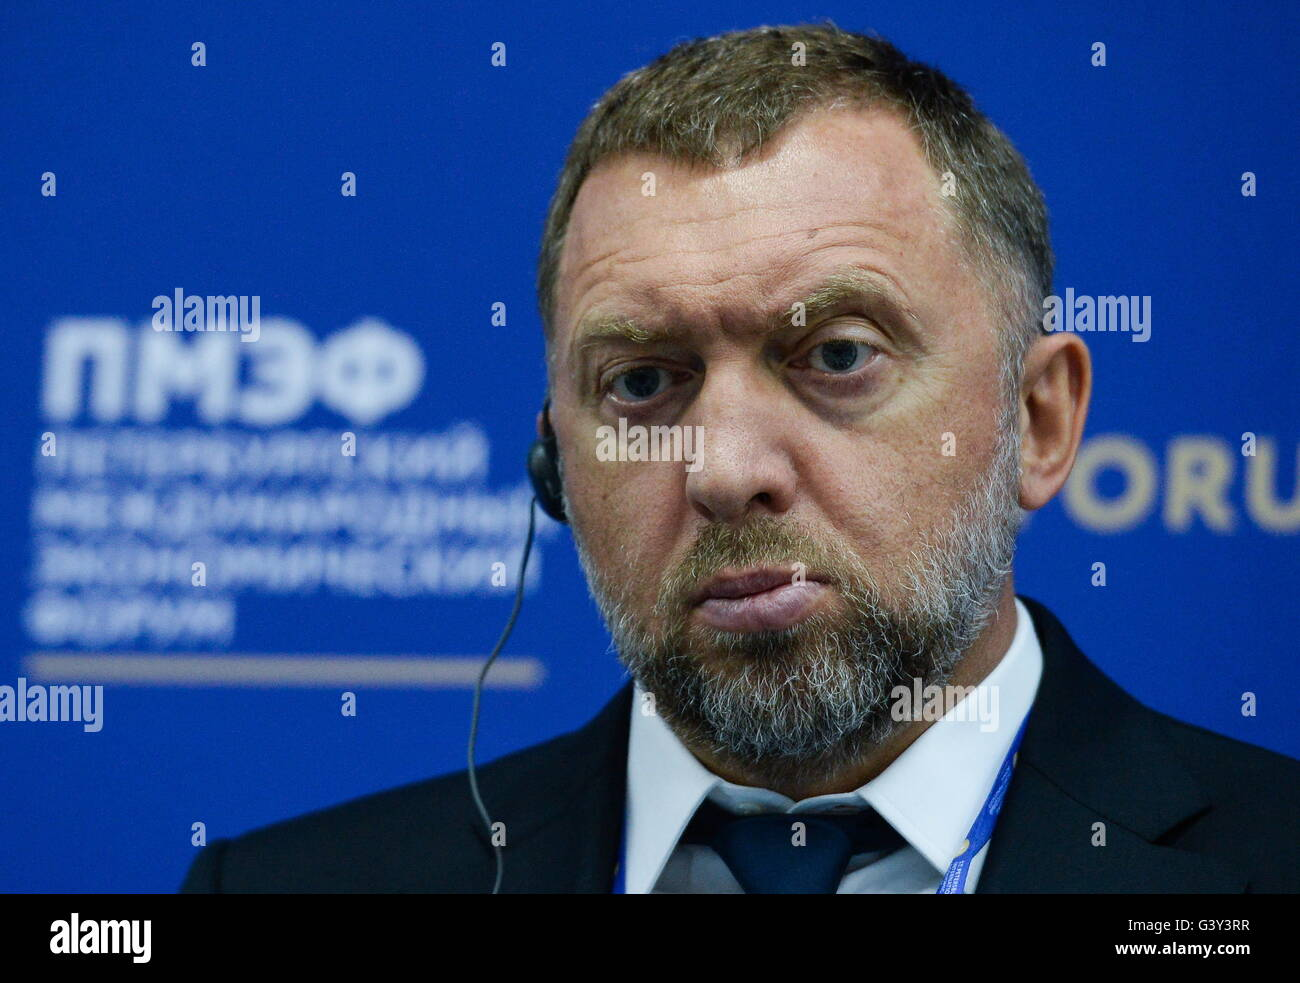 St Petersburg, Russia. 16th June, 2016. Rusal President Oleg Deripaska at a panel session titled 'The Economic - Stock Image